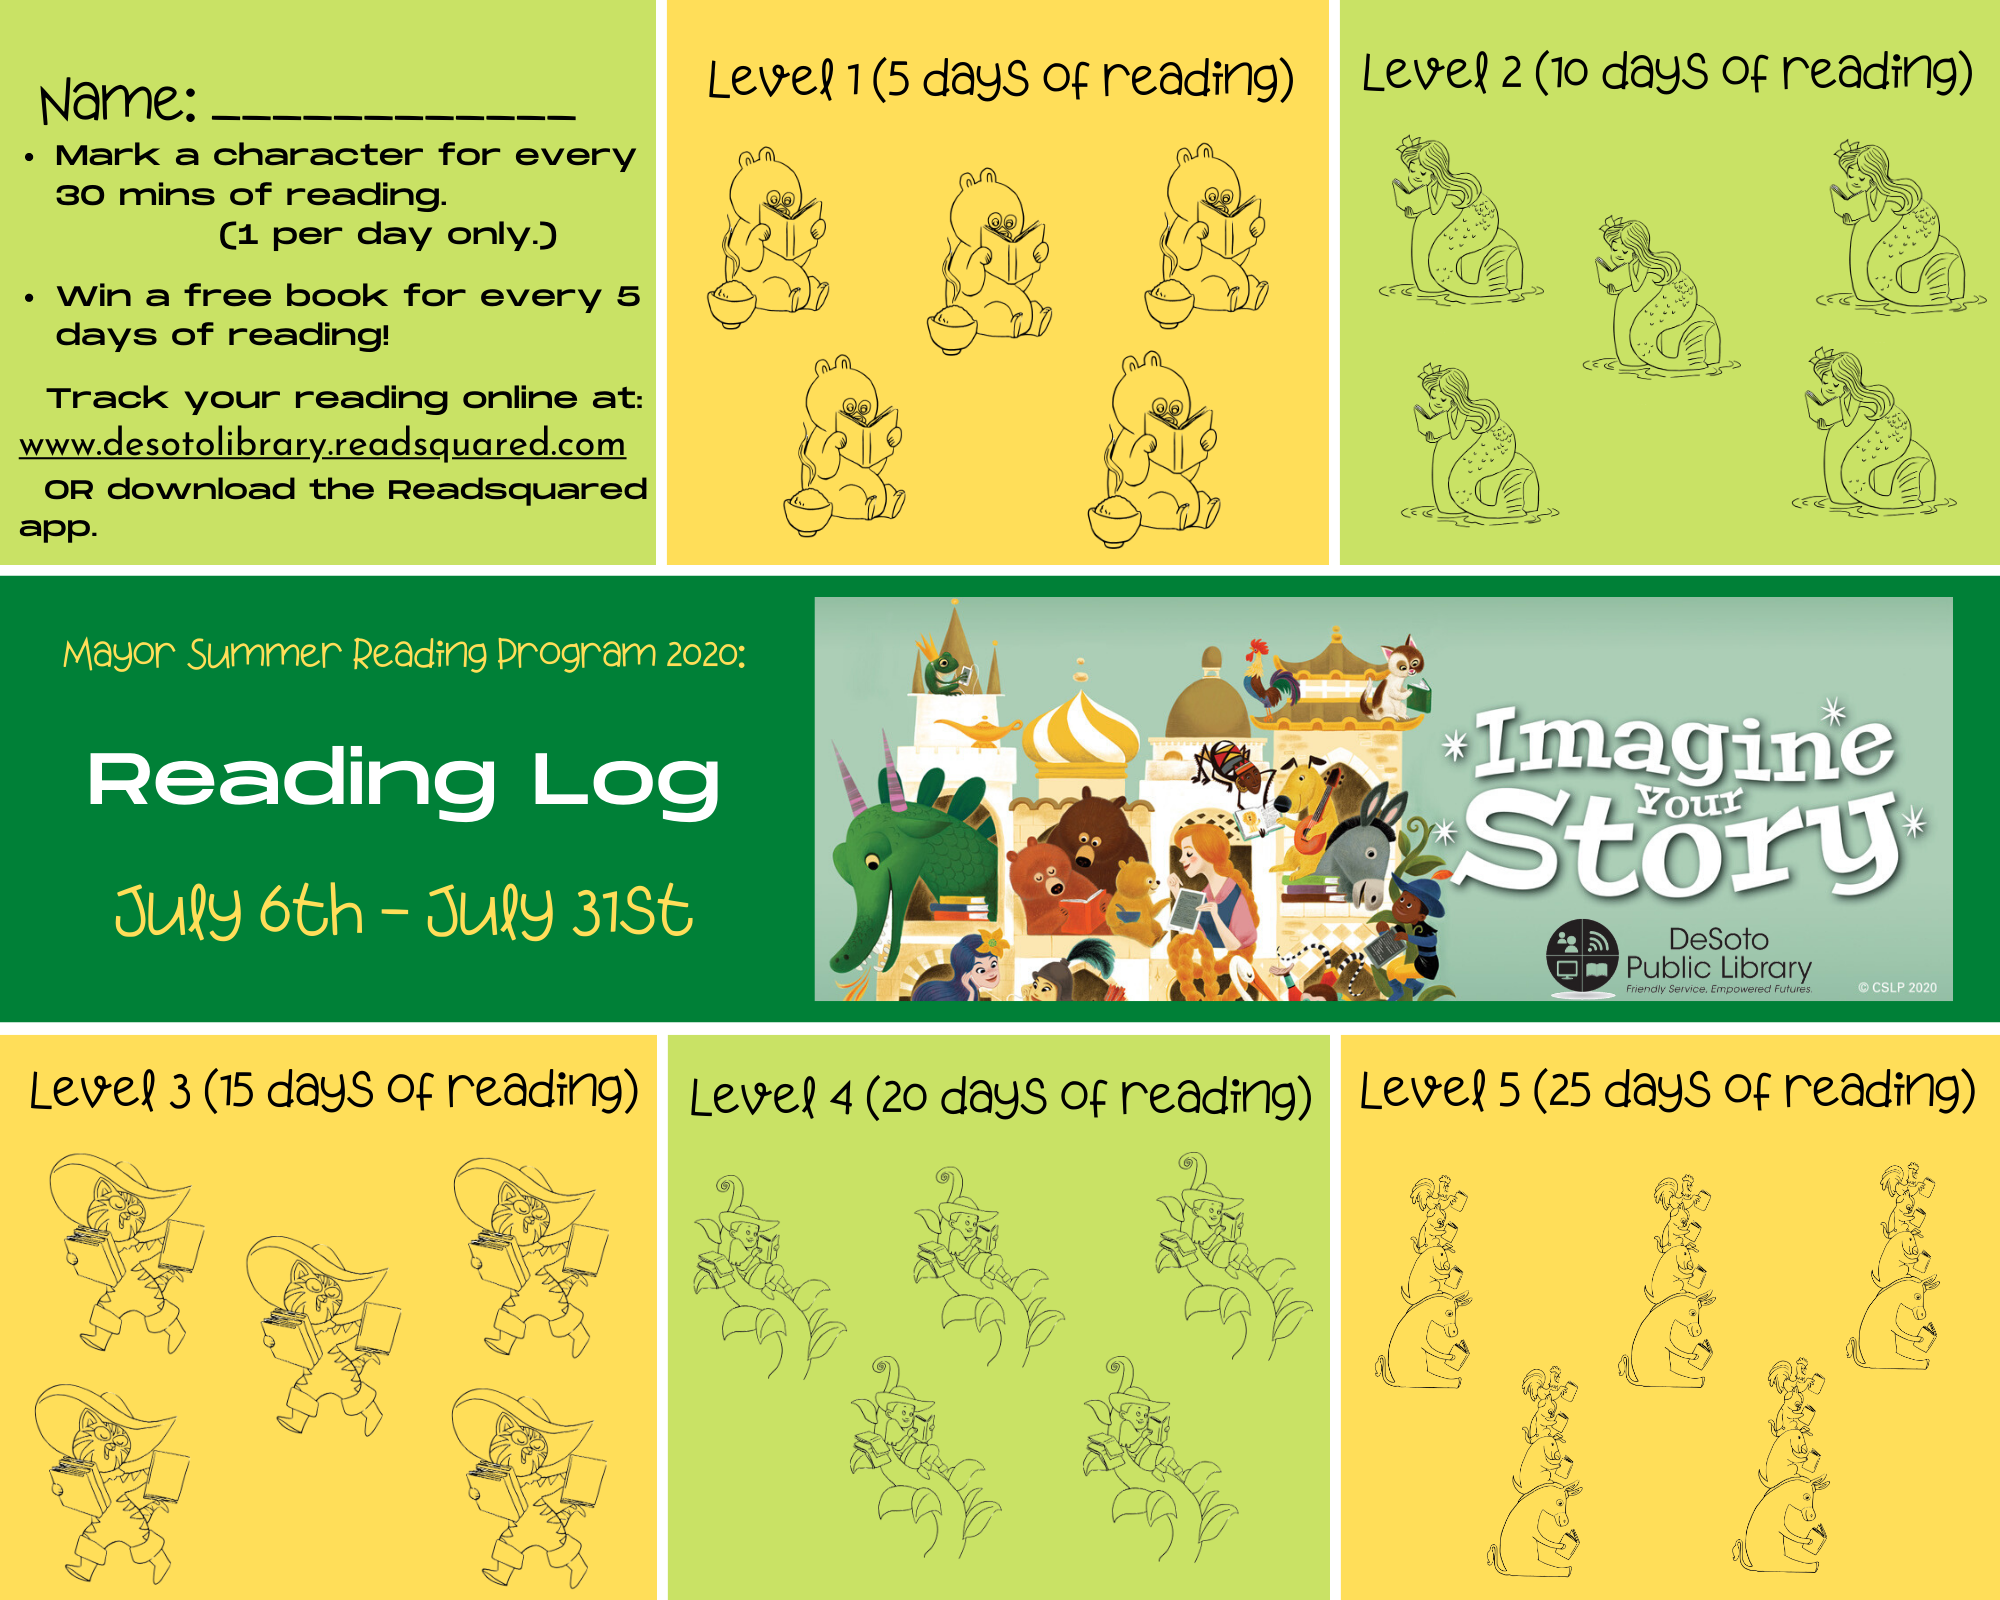 Youth Summer Reading Log 2020 - Click here for a printable version